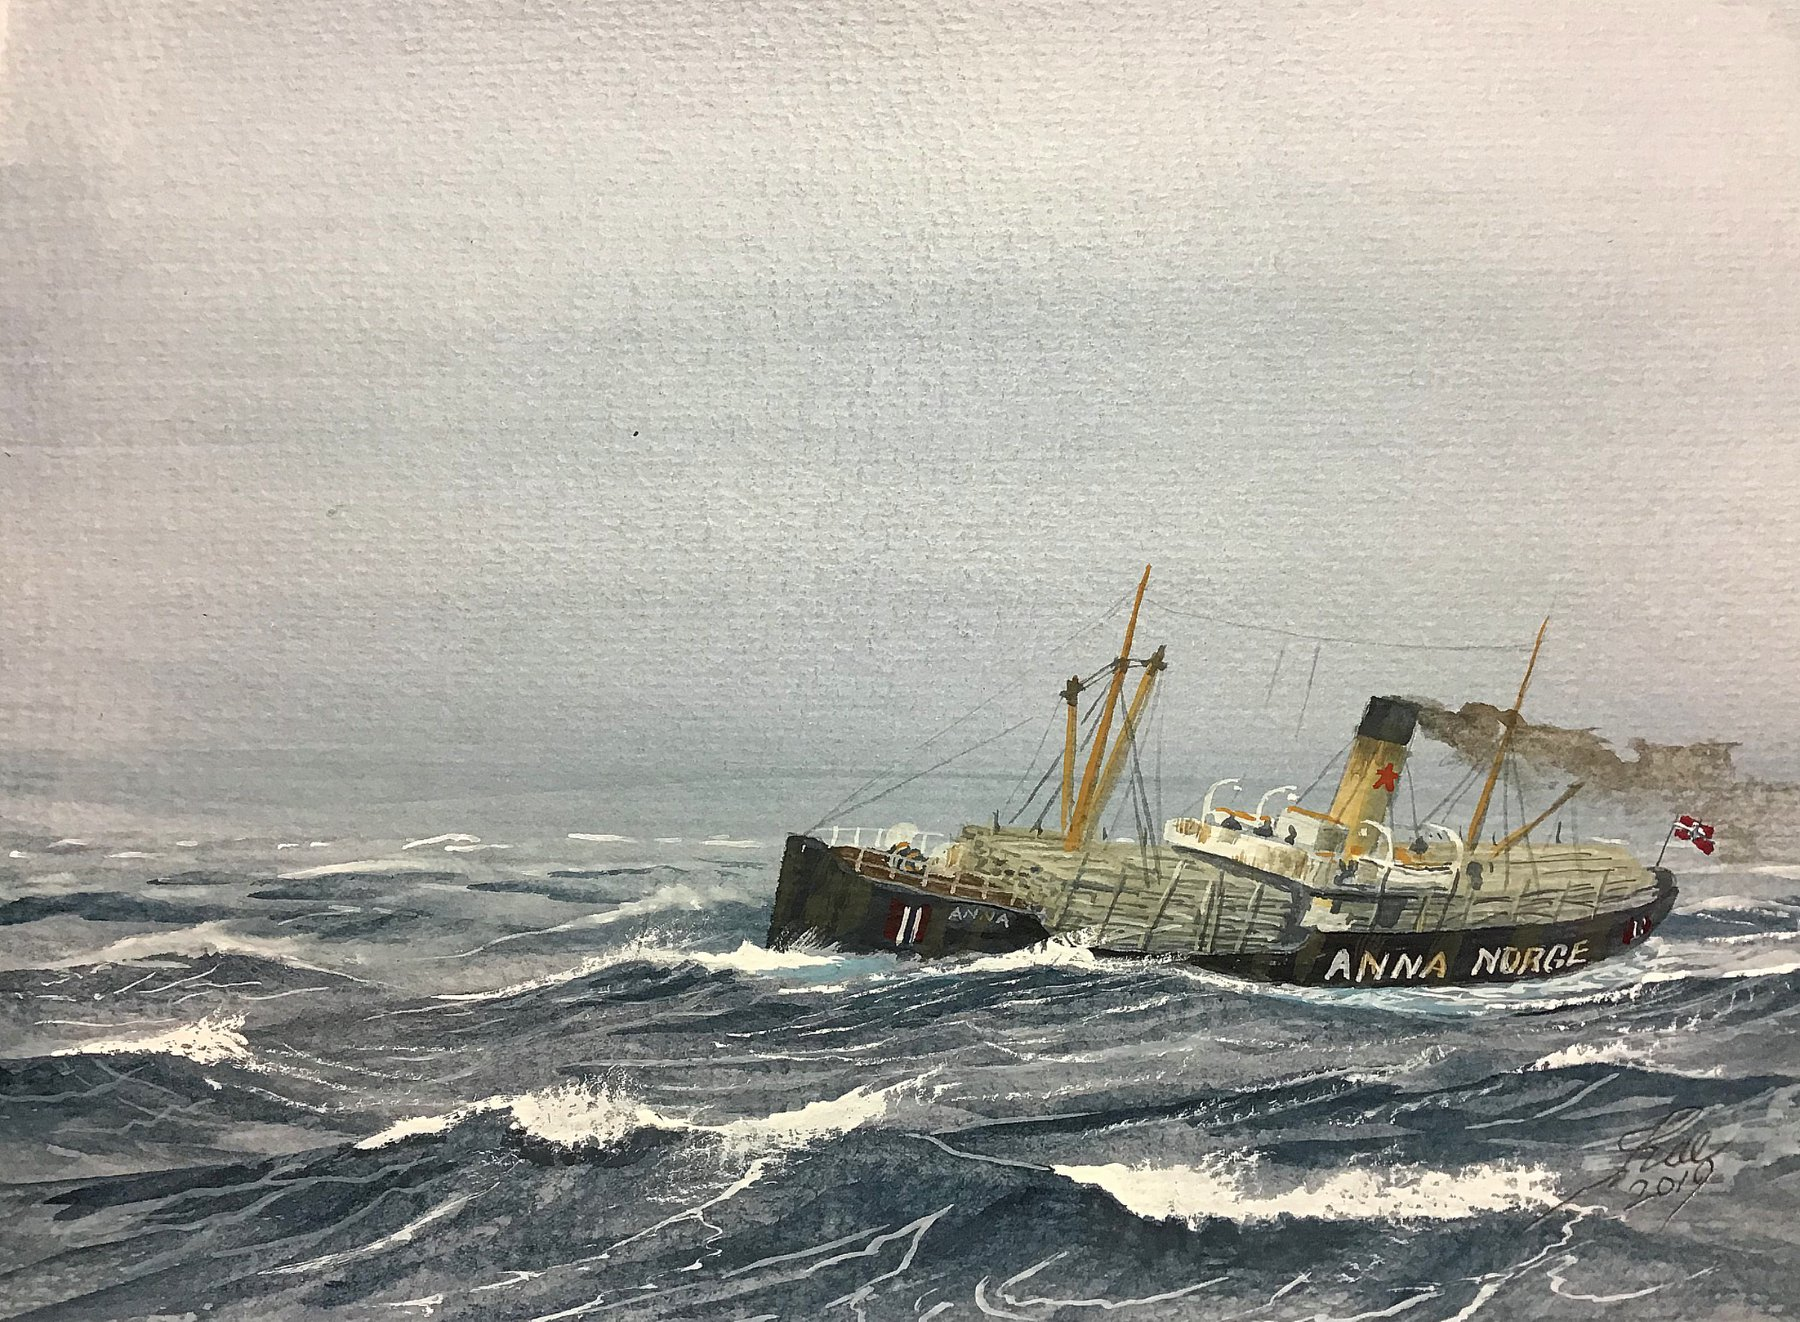 Norwegian Steamer Anna loaded with Timber in a gale. 1917 she was stopped and boarded by U16 on a voyage from Almeria to Glasgow with Esparto Grass. She was sunk by scuttling, no casualties